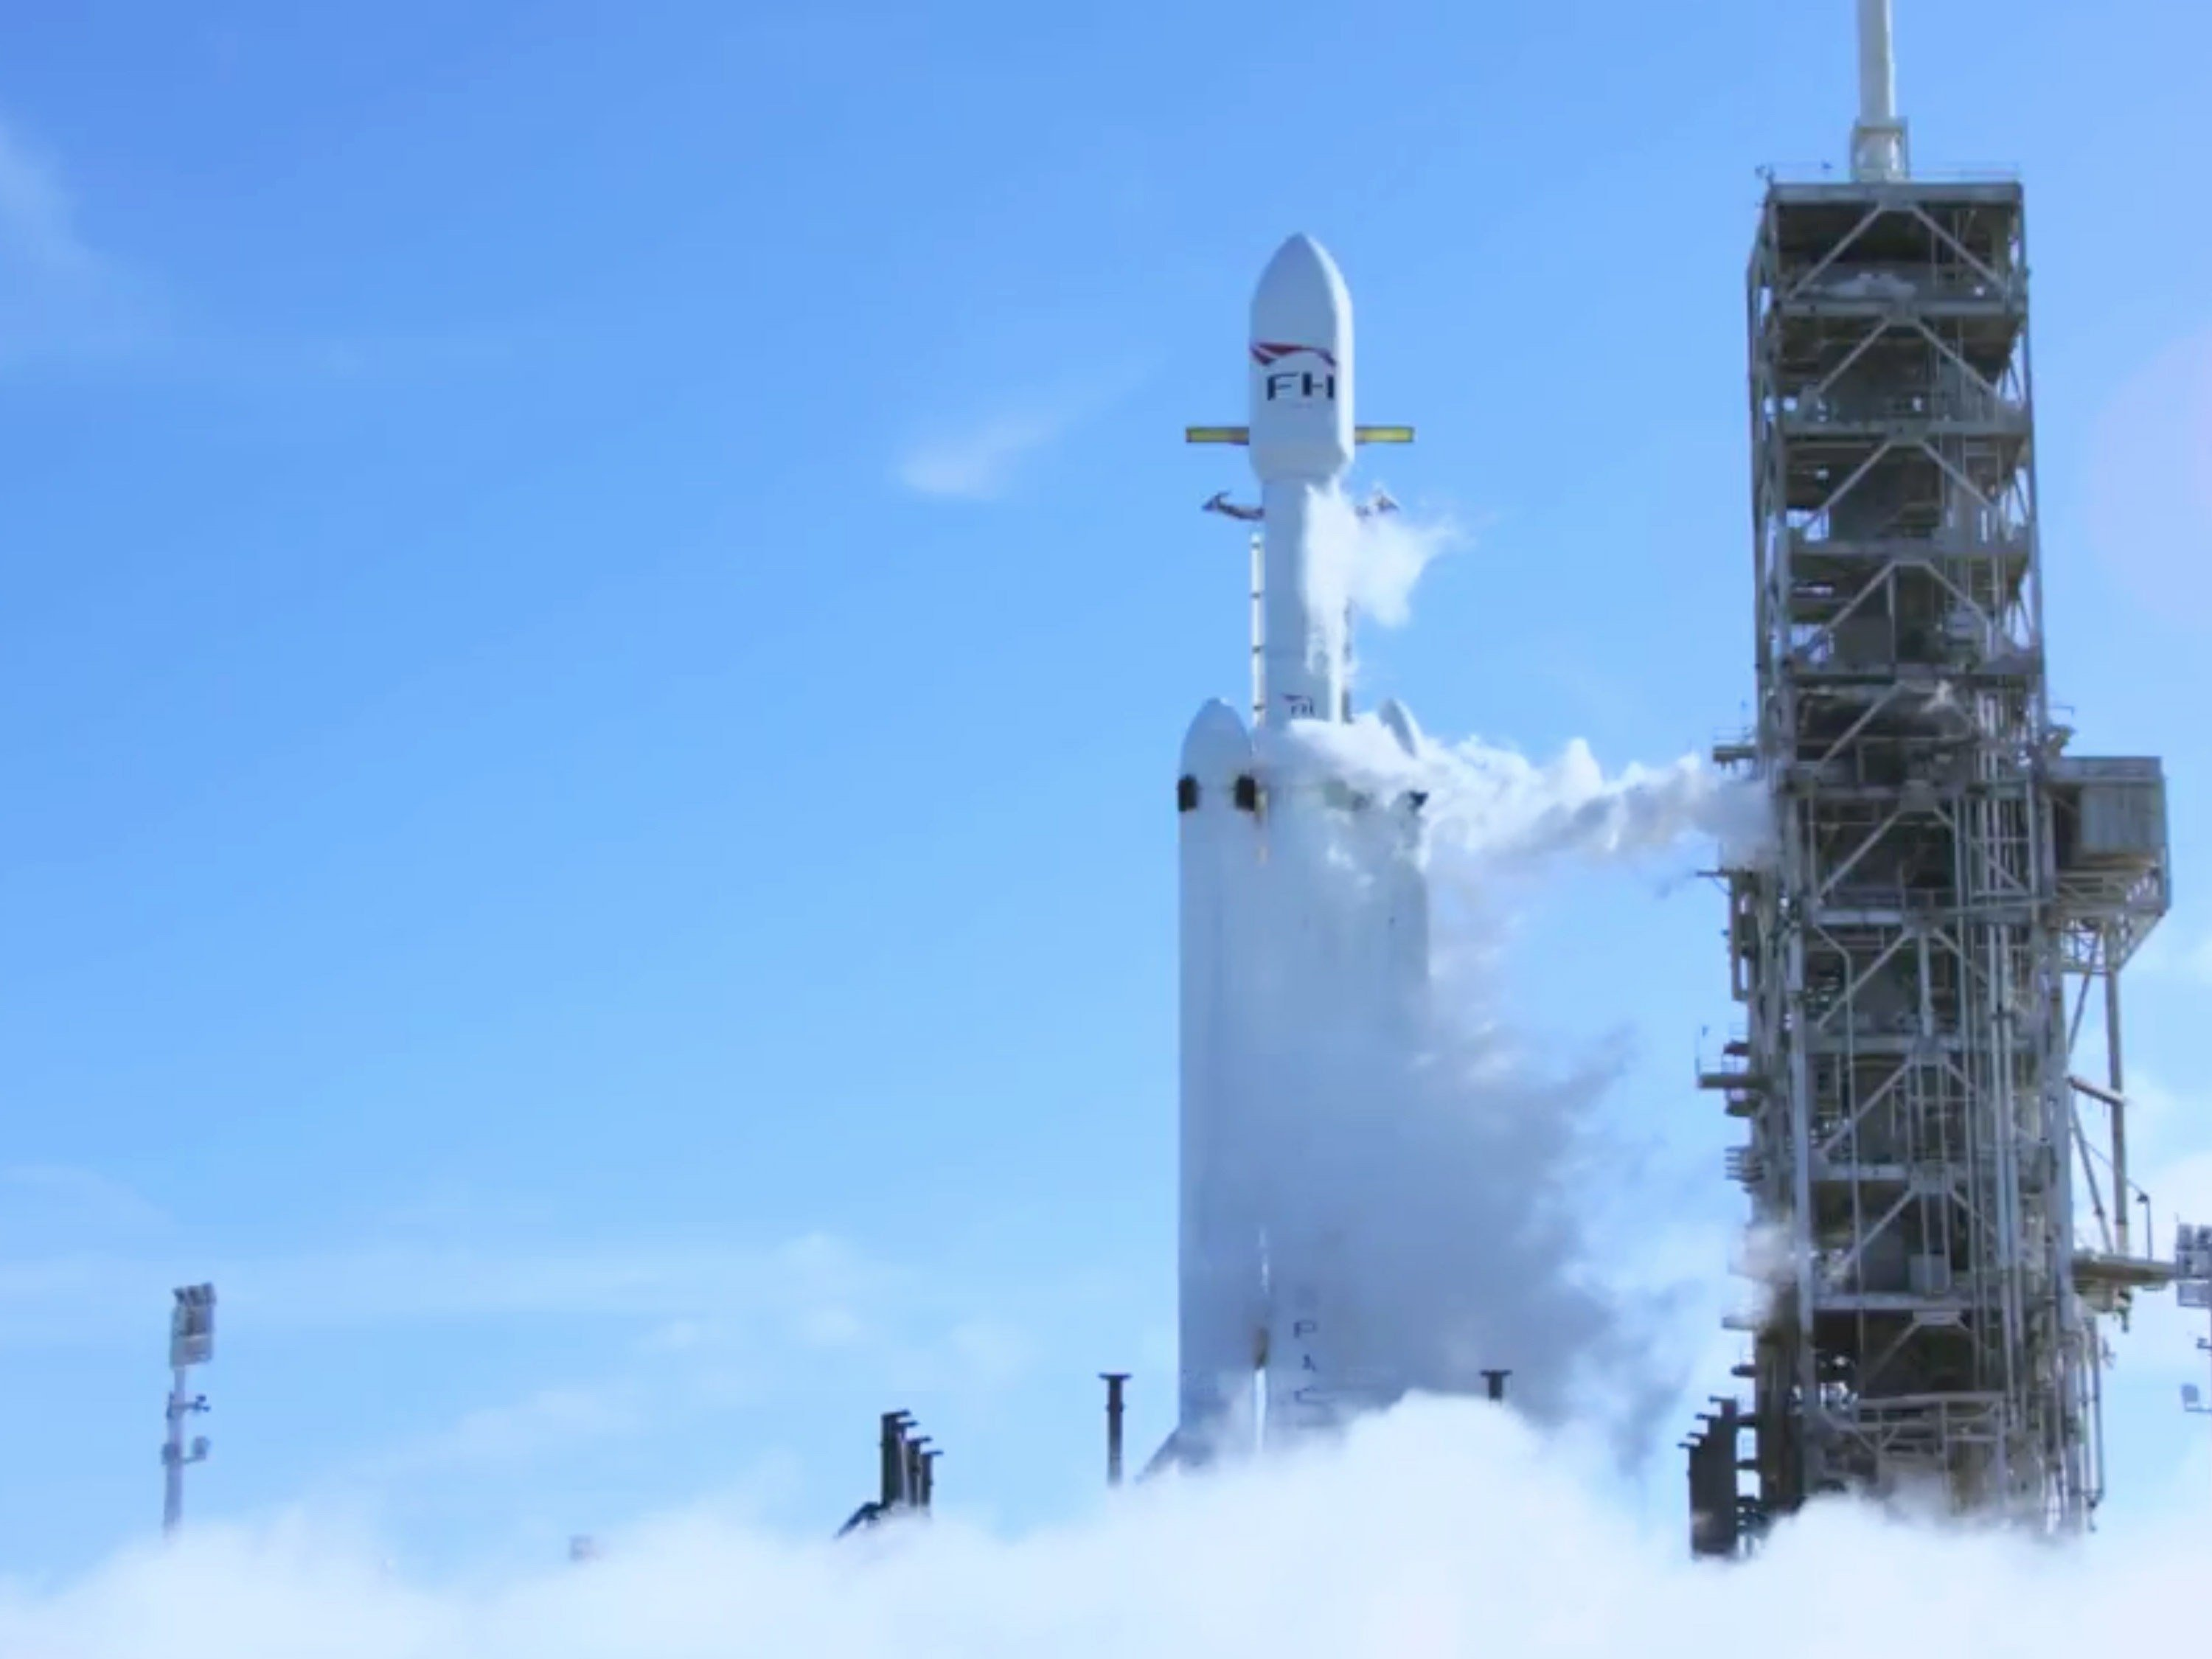 Musk cherry's Falcon gives Roadster ride to Mars